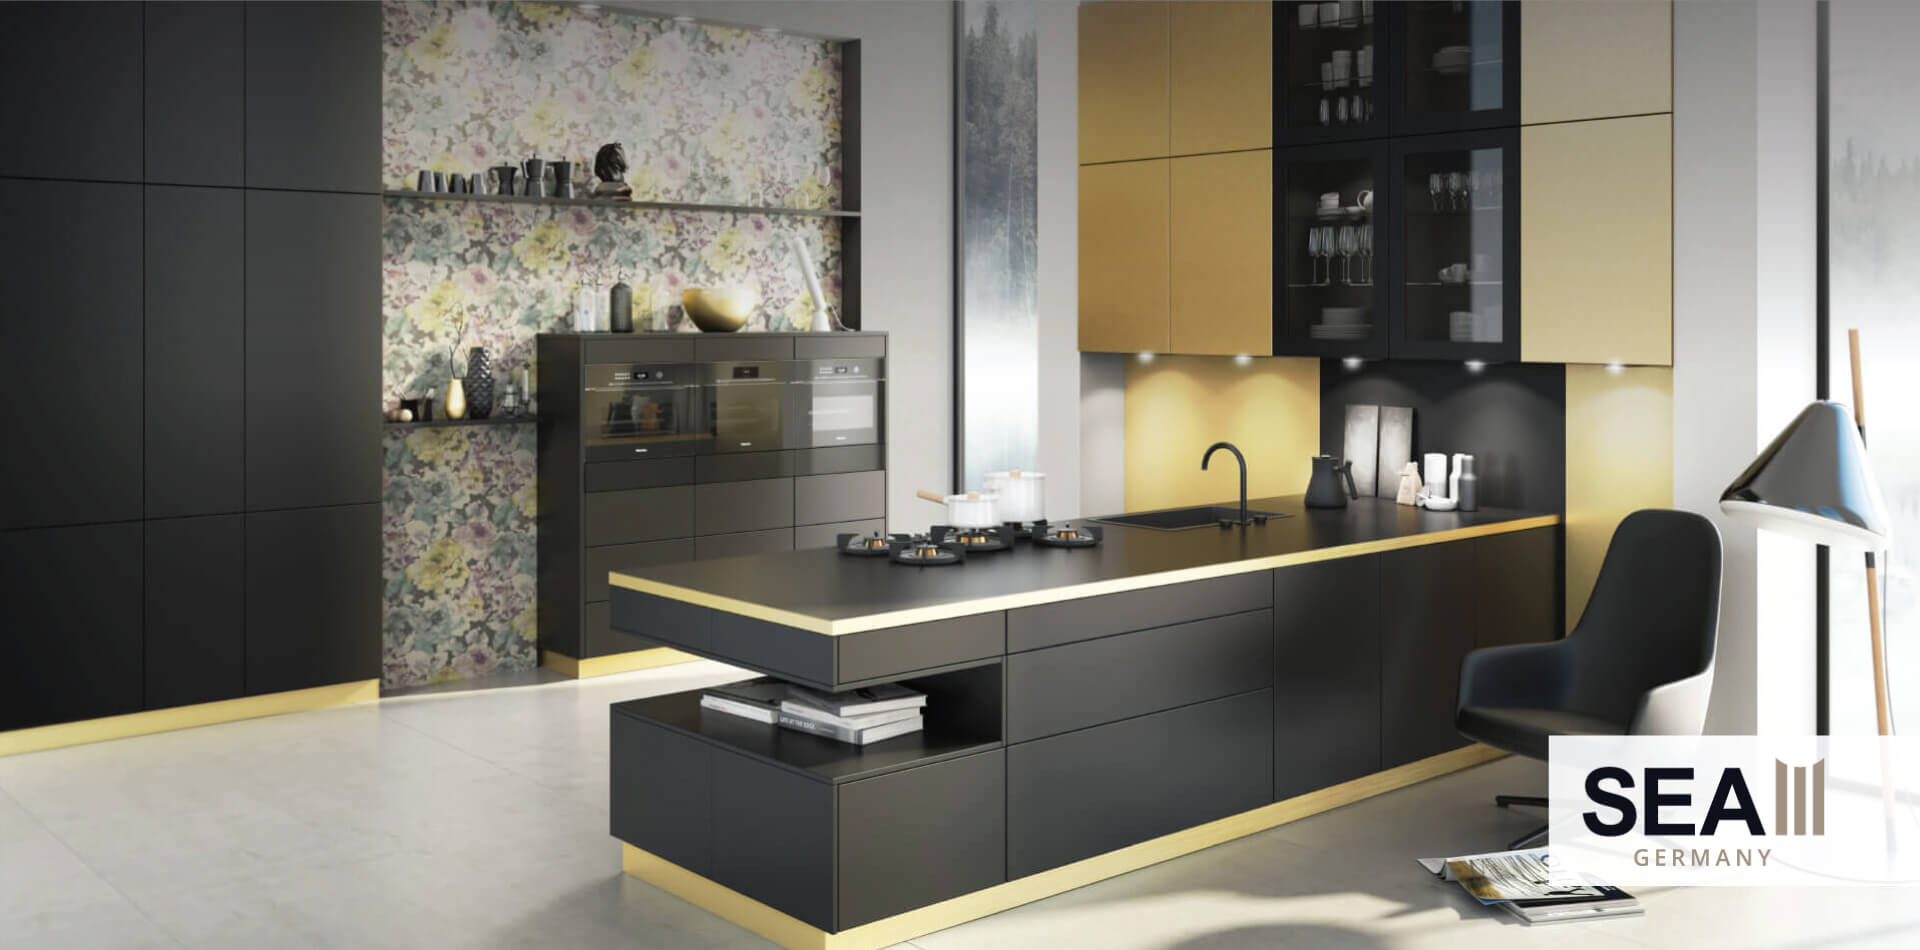 Black and gold themed kitchen design